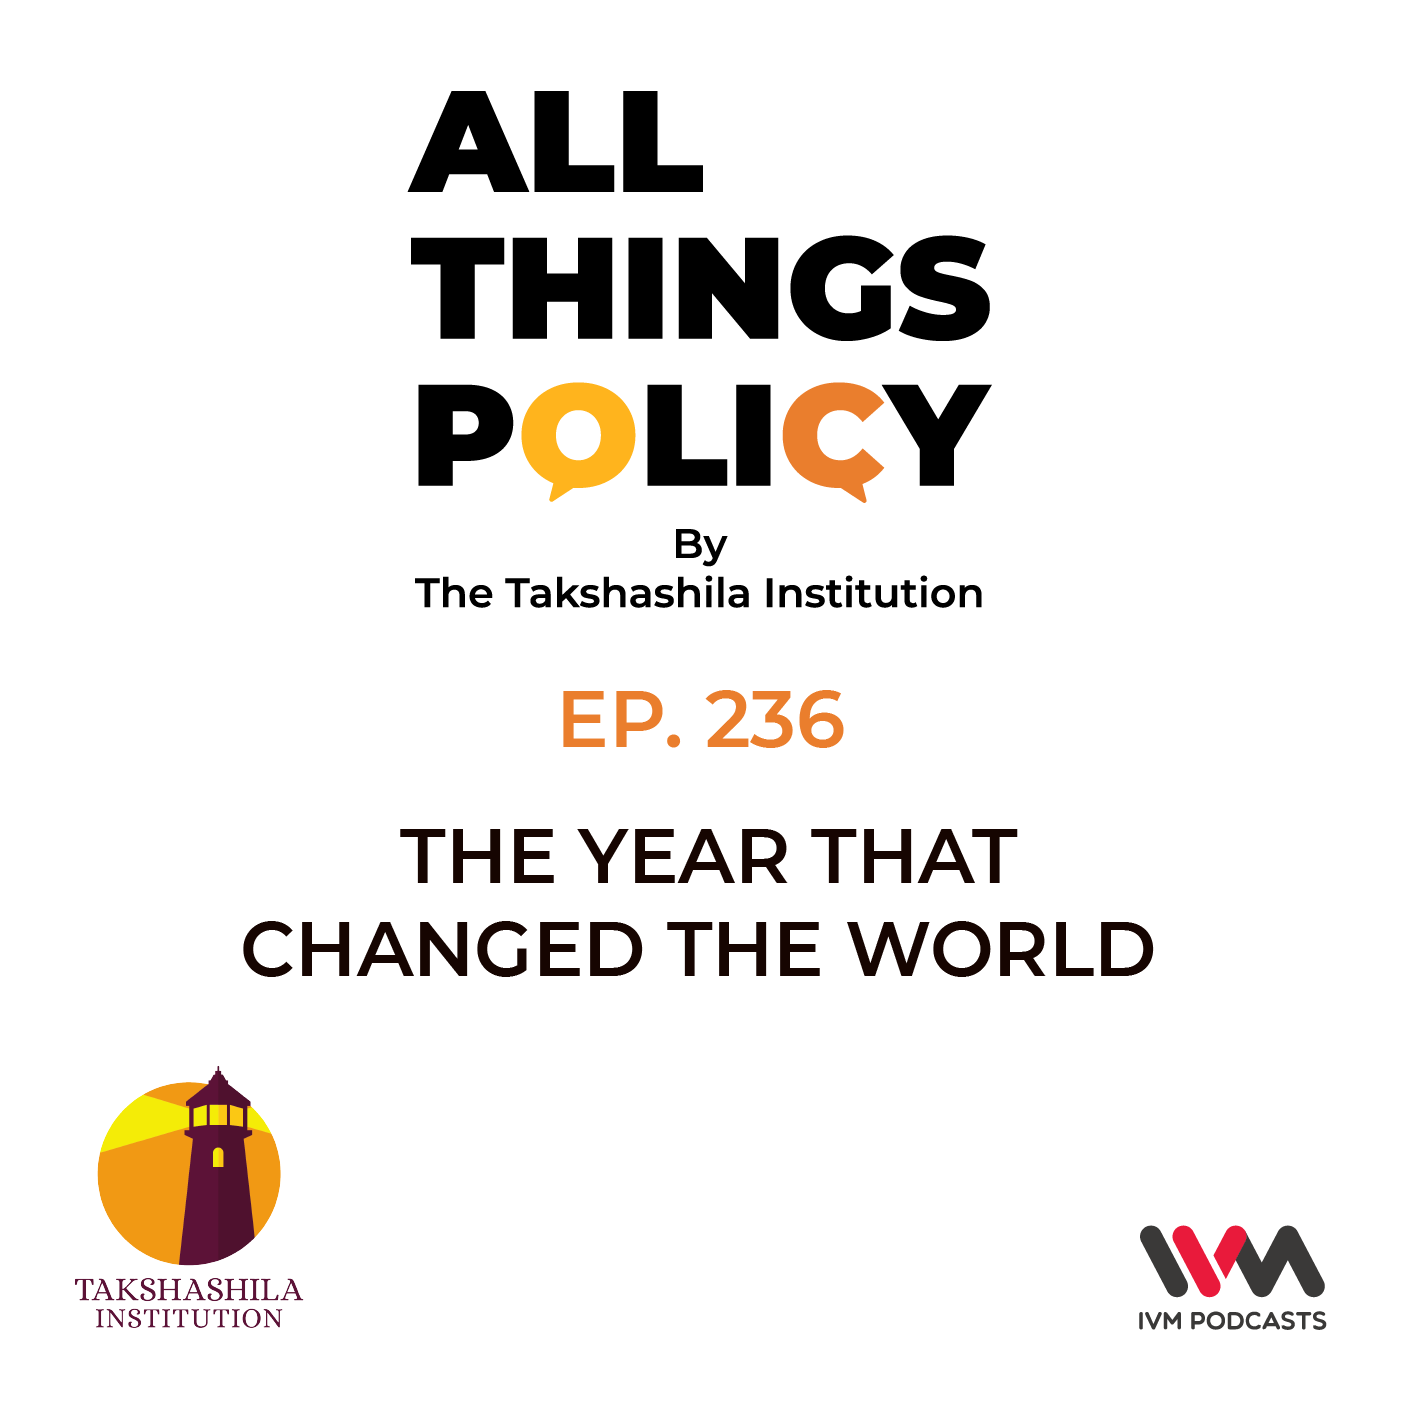 Ep. 236: The Year that Changed the World